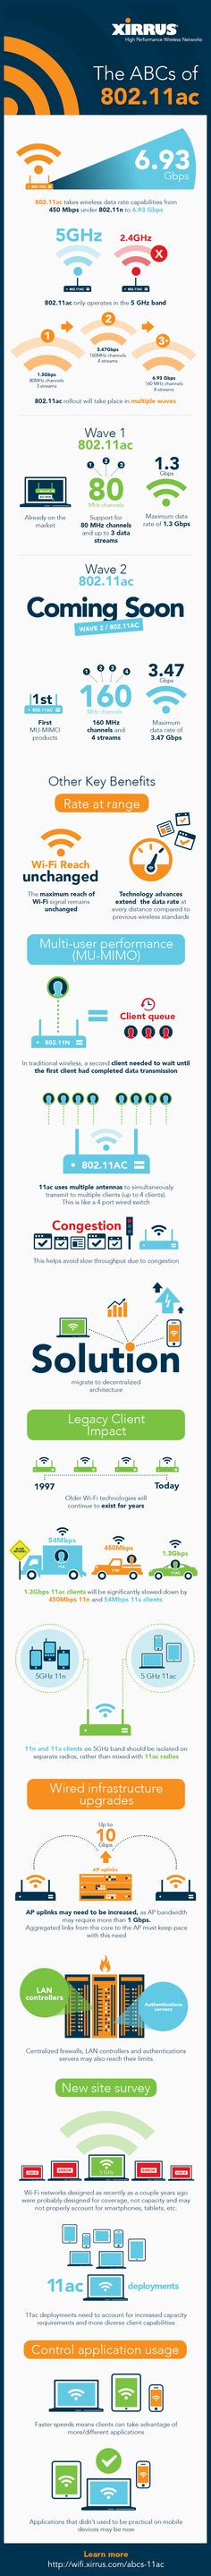 Great overview of current and coming Wireless WiFi 802.11ac